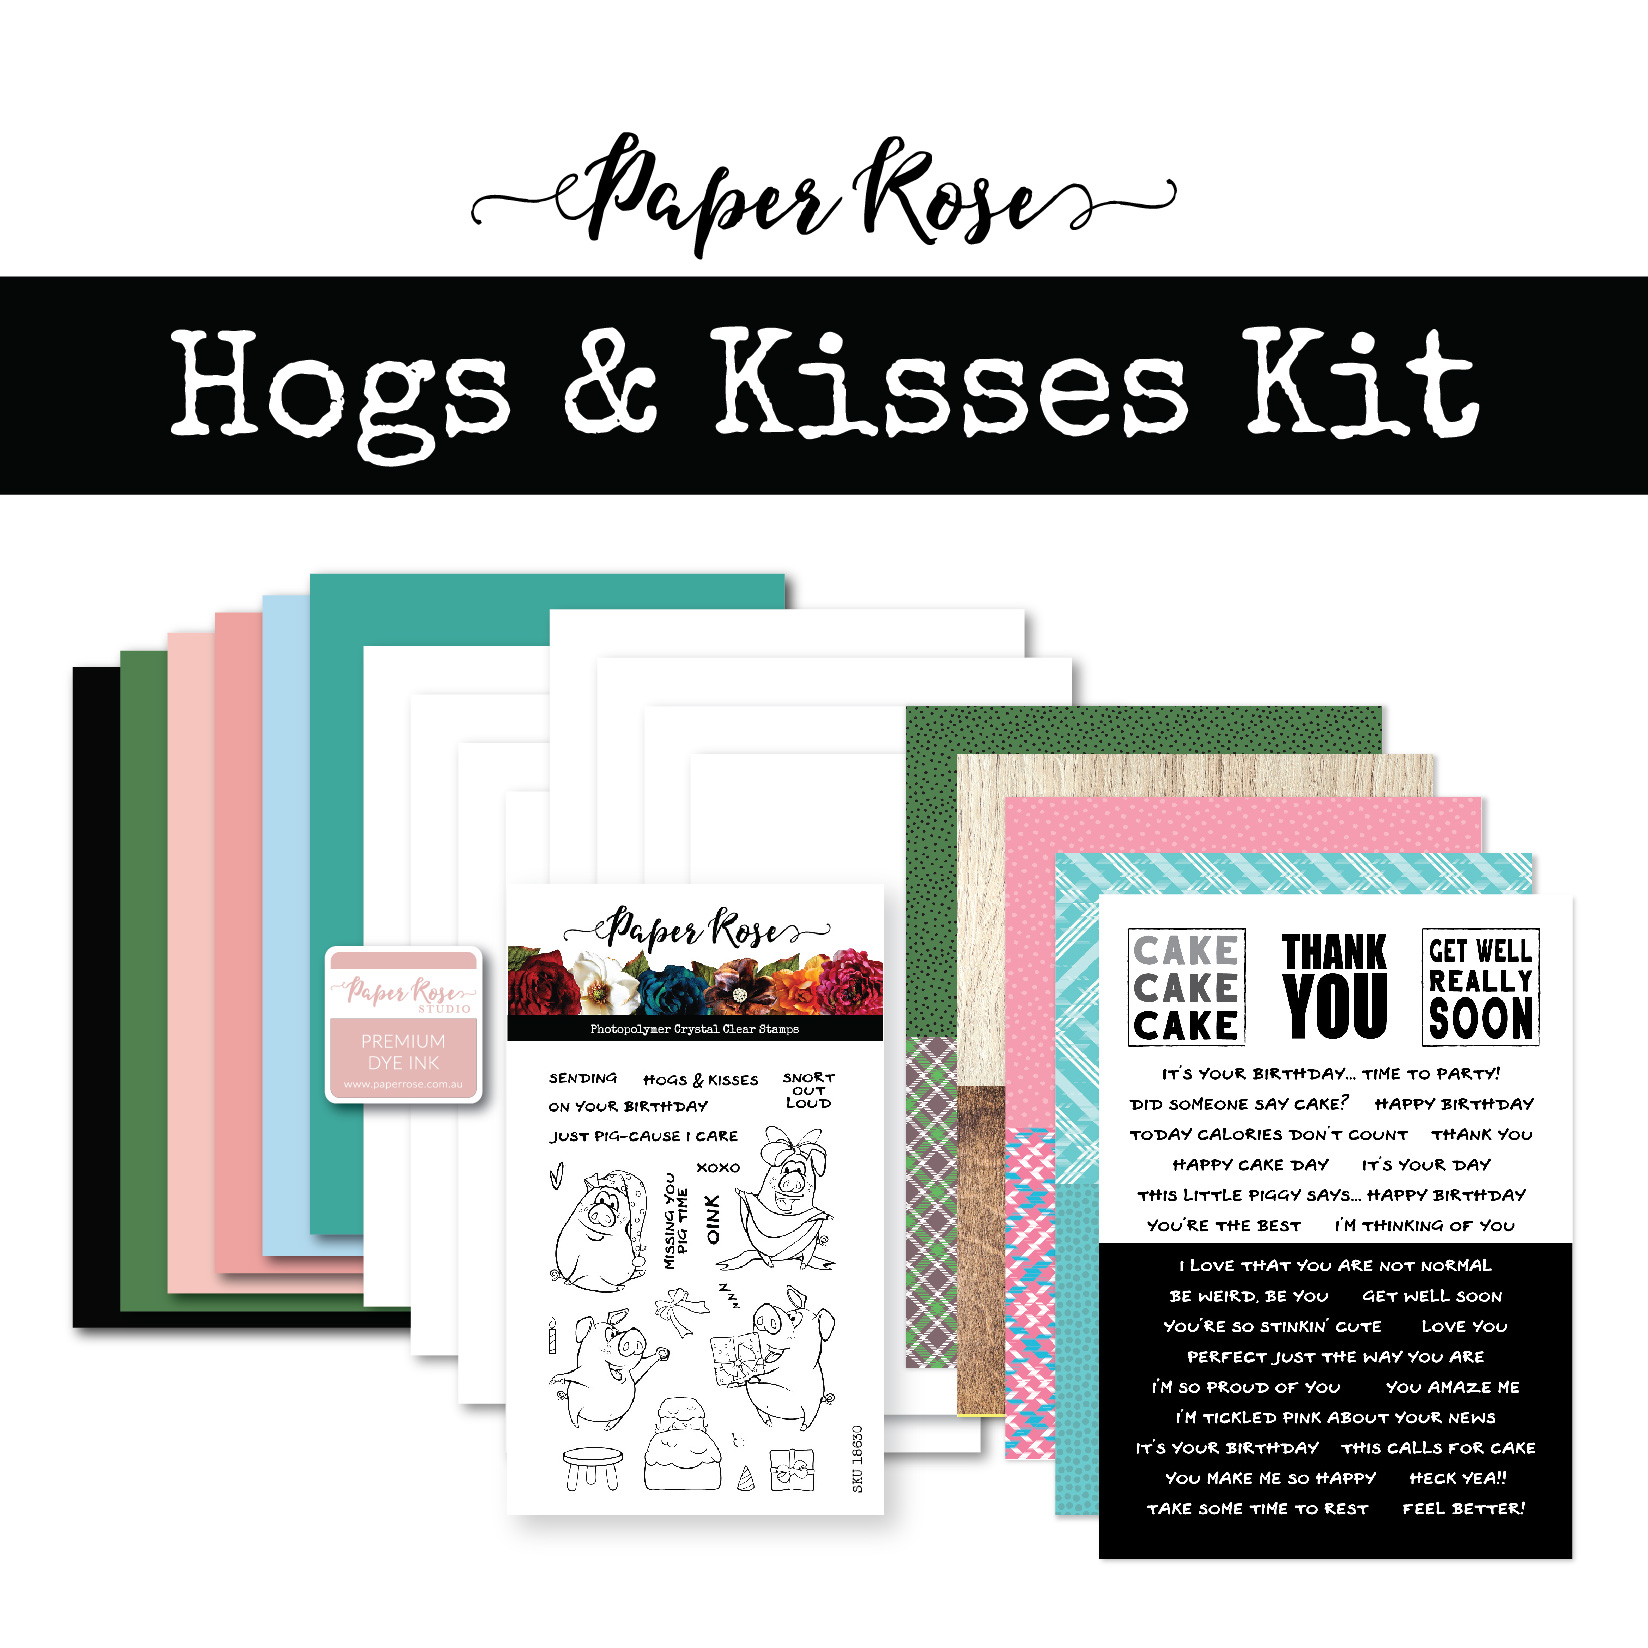 Cardmaking Kit, Hogs & Kisses